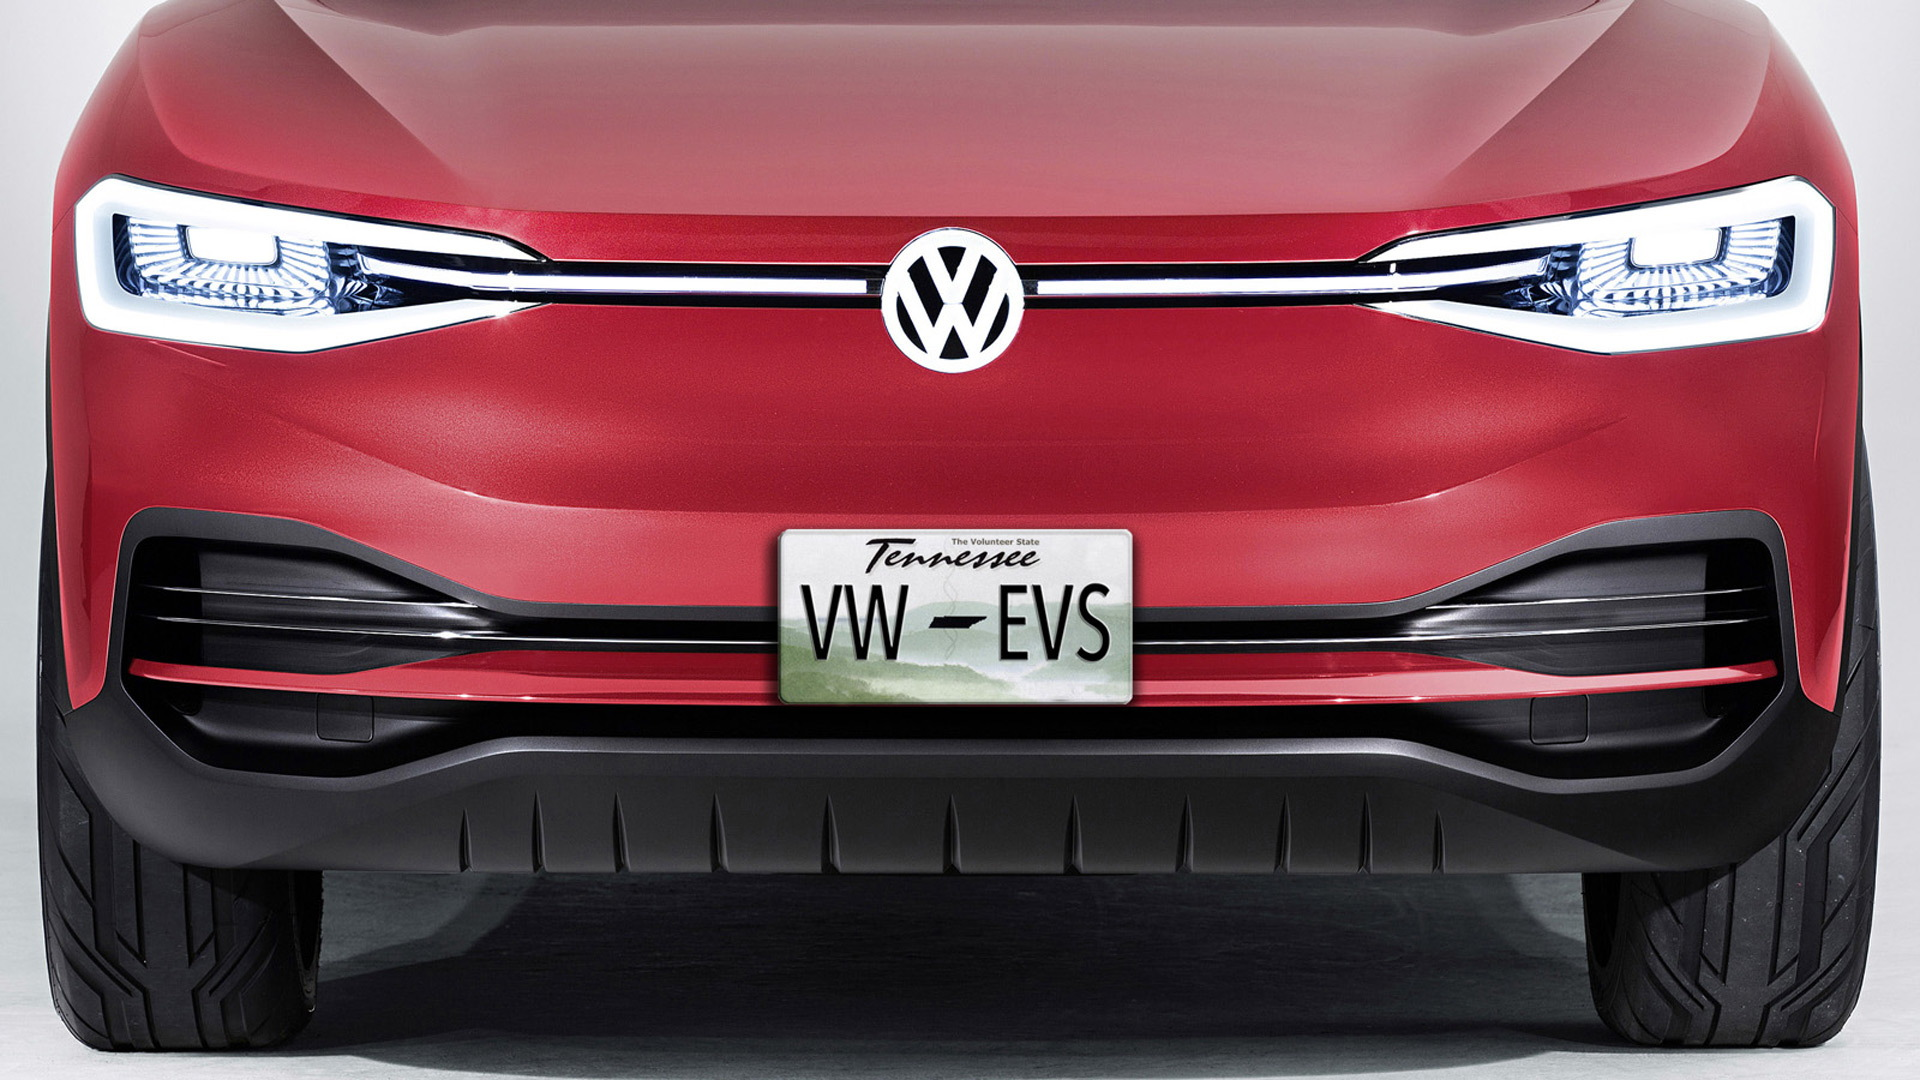 Volkswagen to build EVs at Chattanooga, Tennessee plant starting in 2022